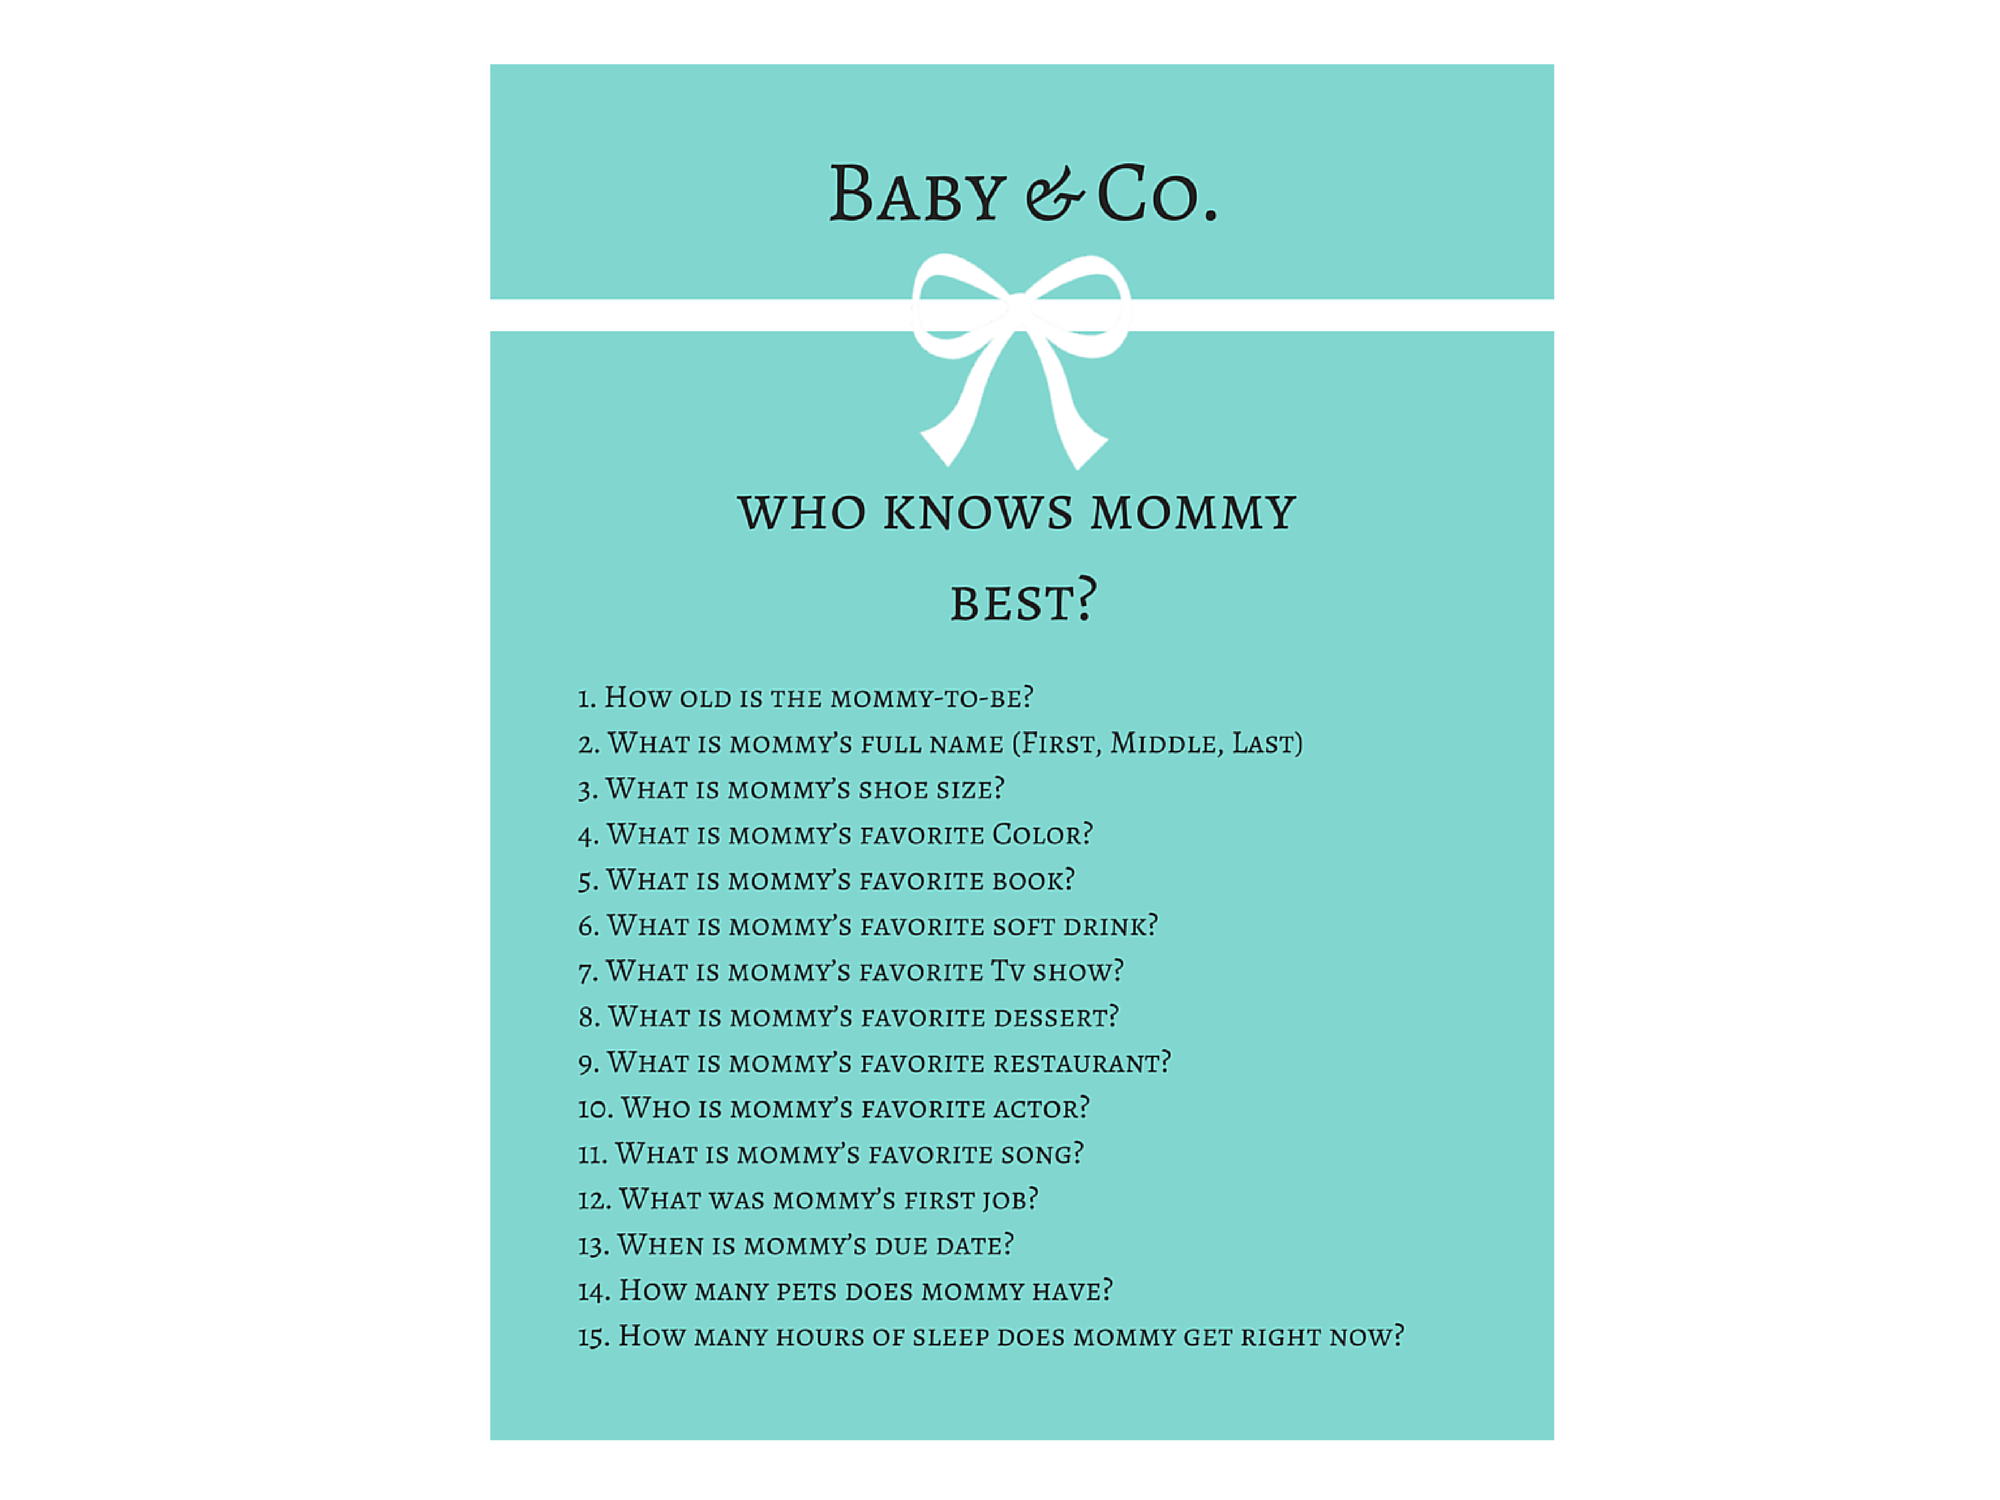 photo regarding Who Knows Mommy Best Printable identify tiffany Child Shower who appreciates mommy excellent - Magical Printable